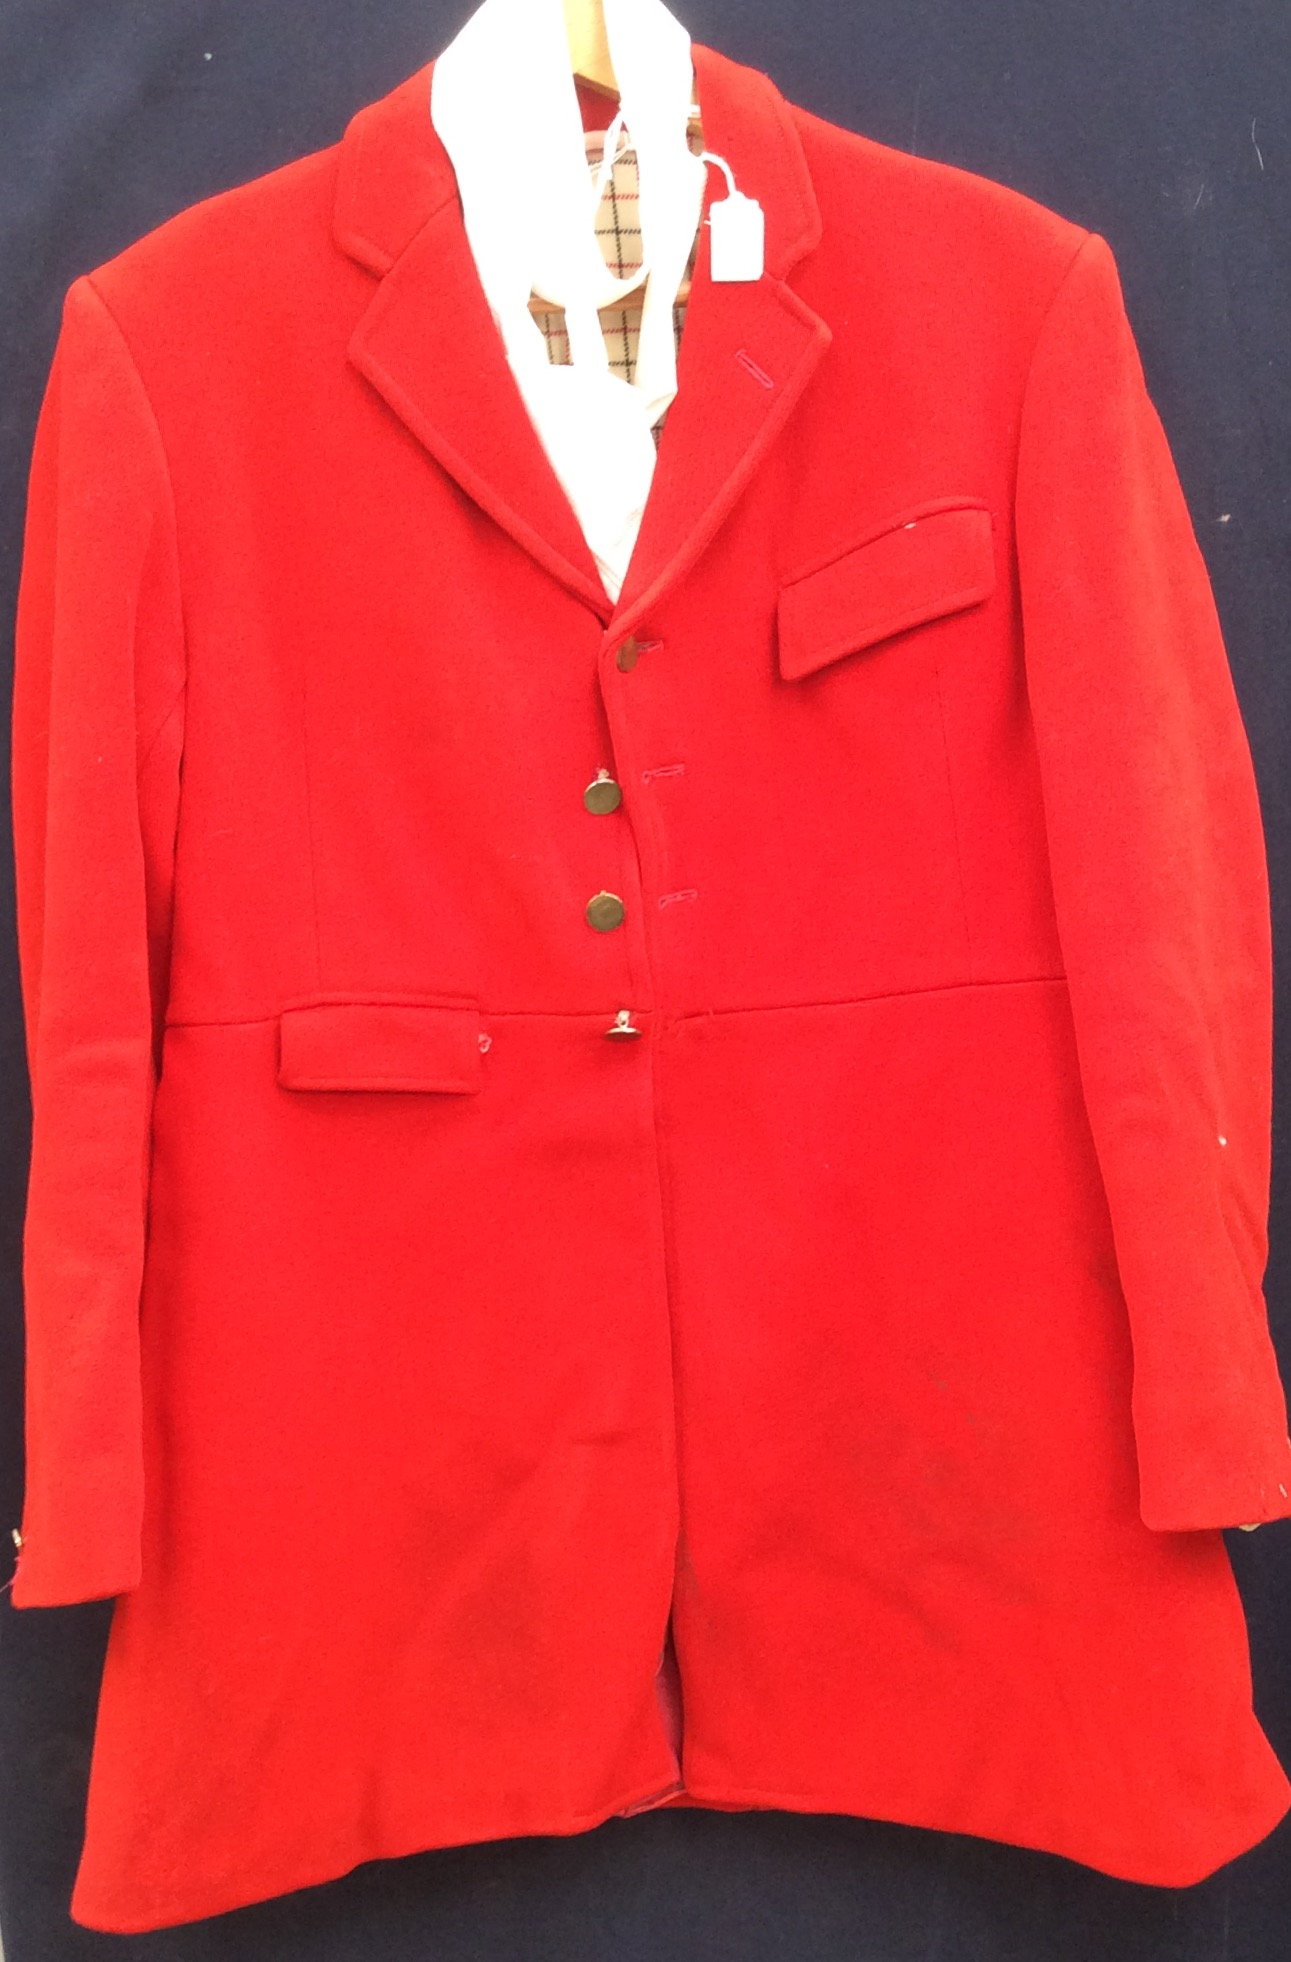 584d9691d90d8 Lot 2414 - A Harry Hall red wool hunting jacket with a cream / red /